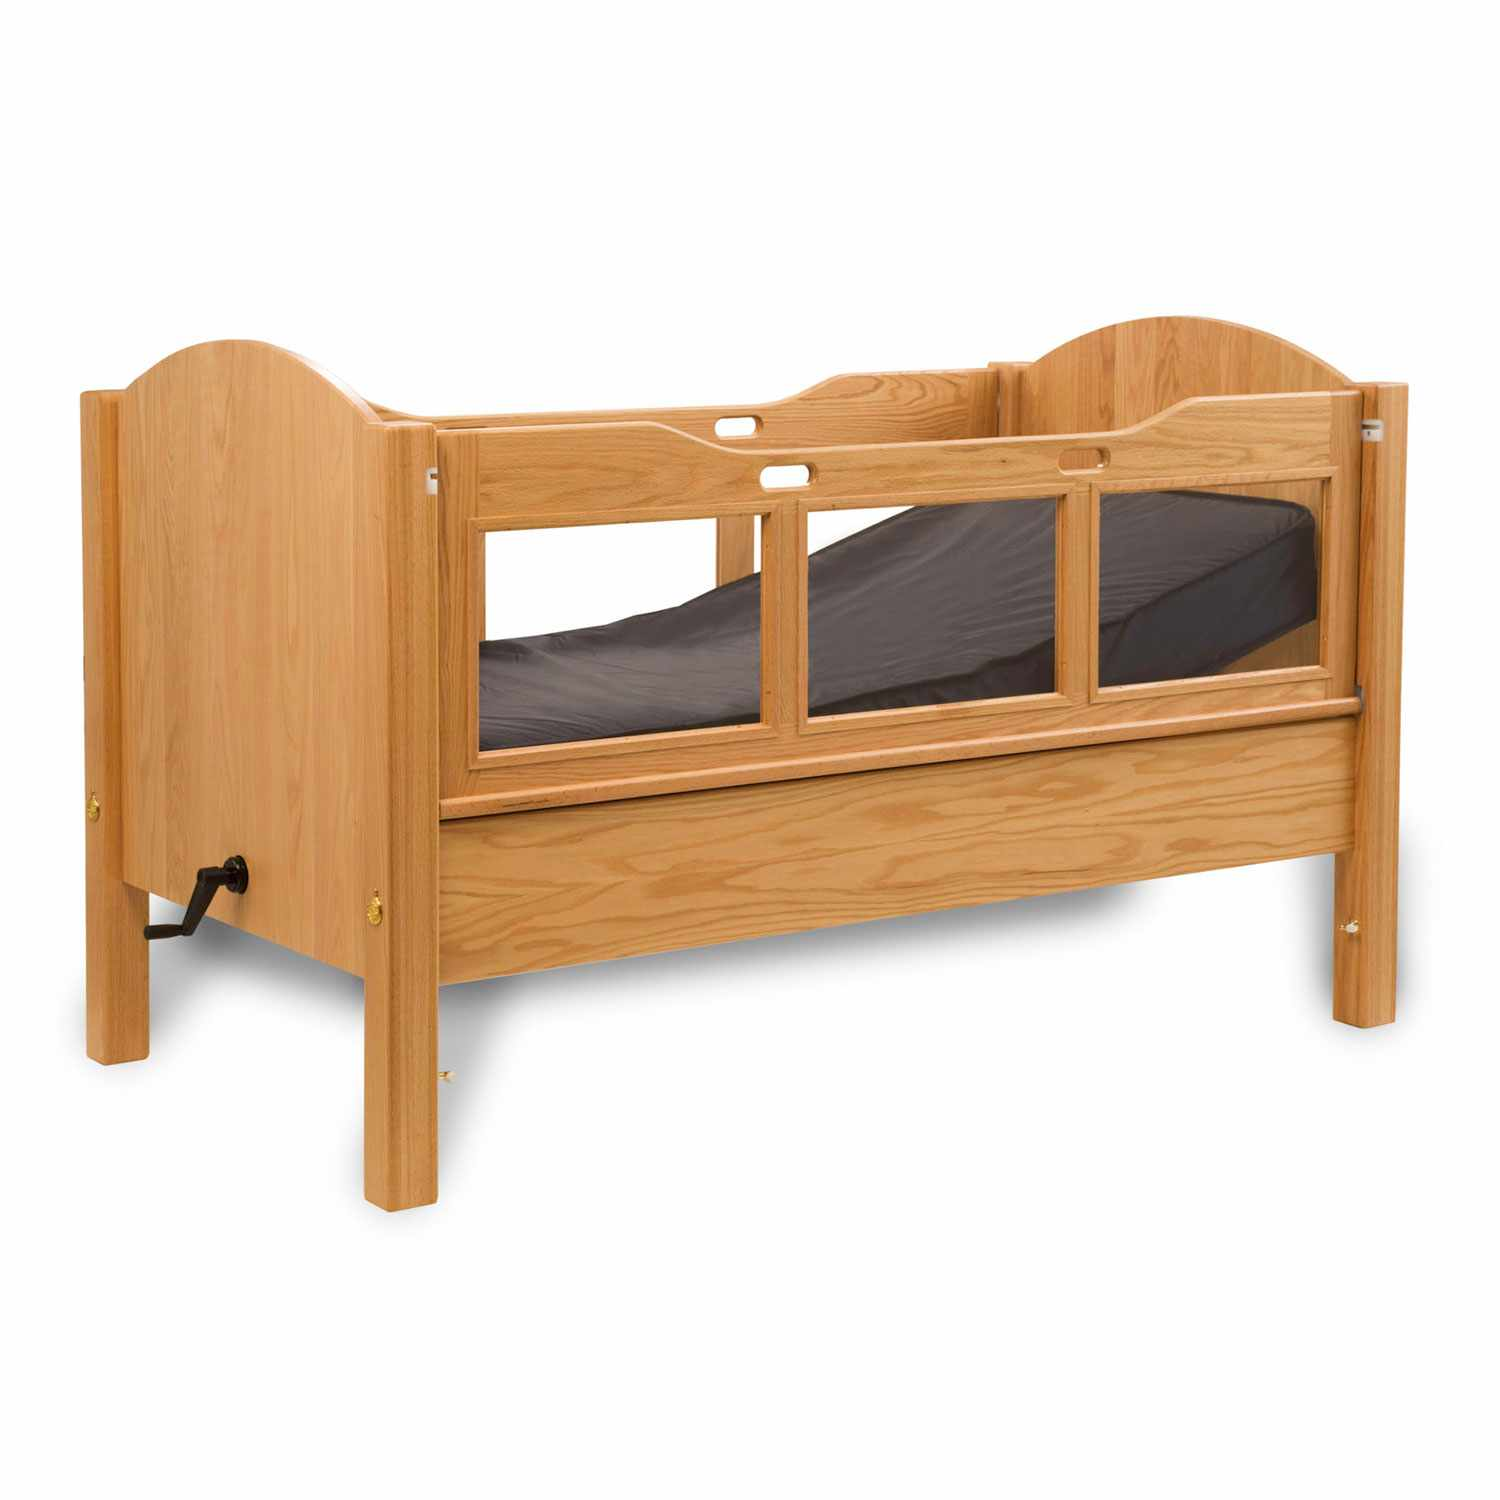 Dream series twin size bed with manual adjustable head and foot